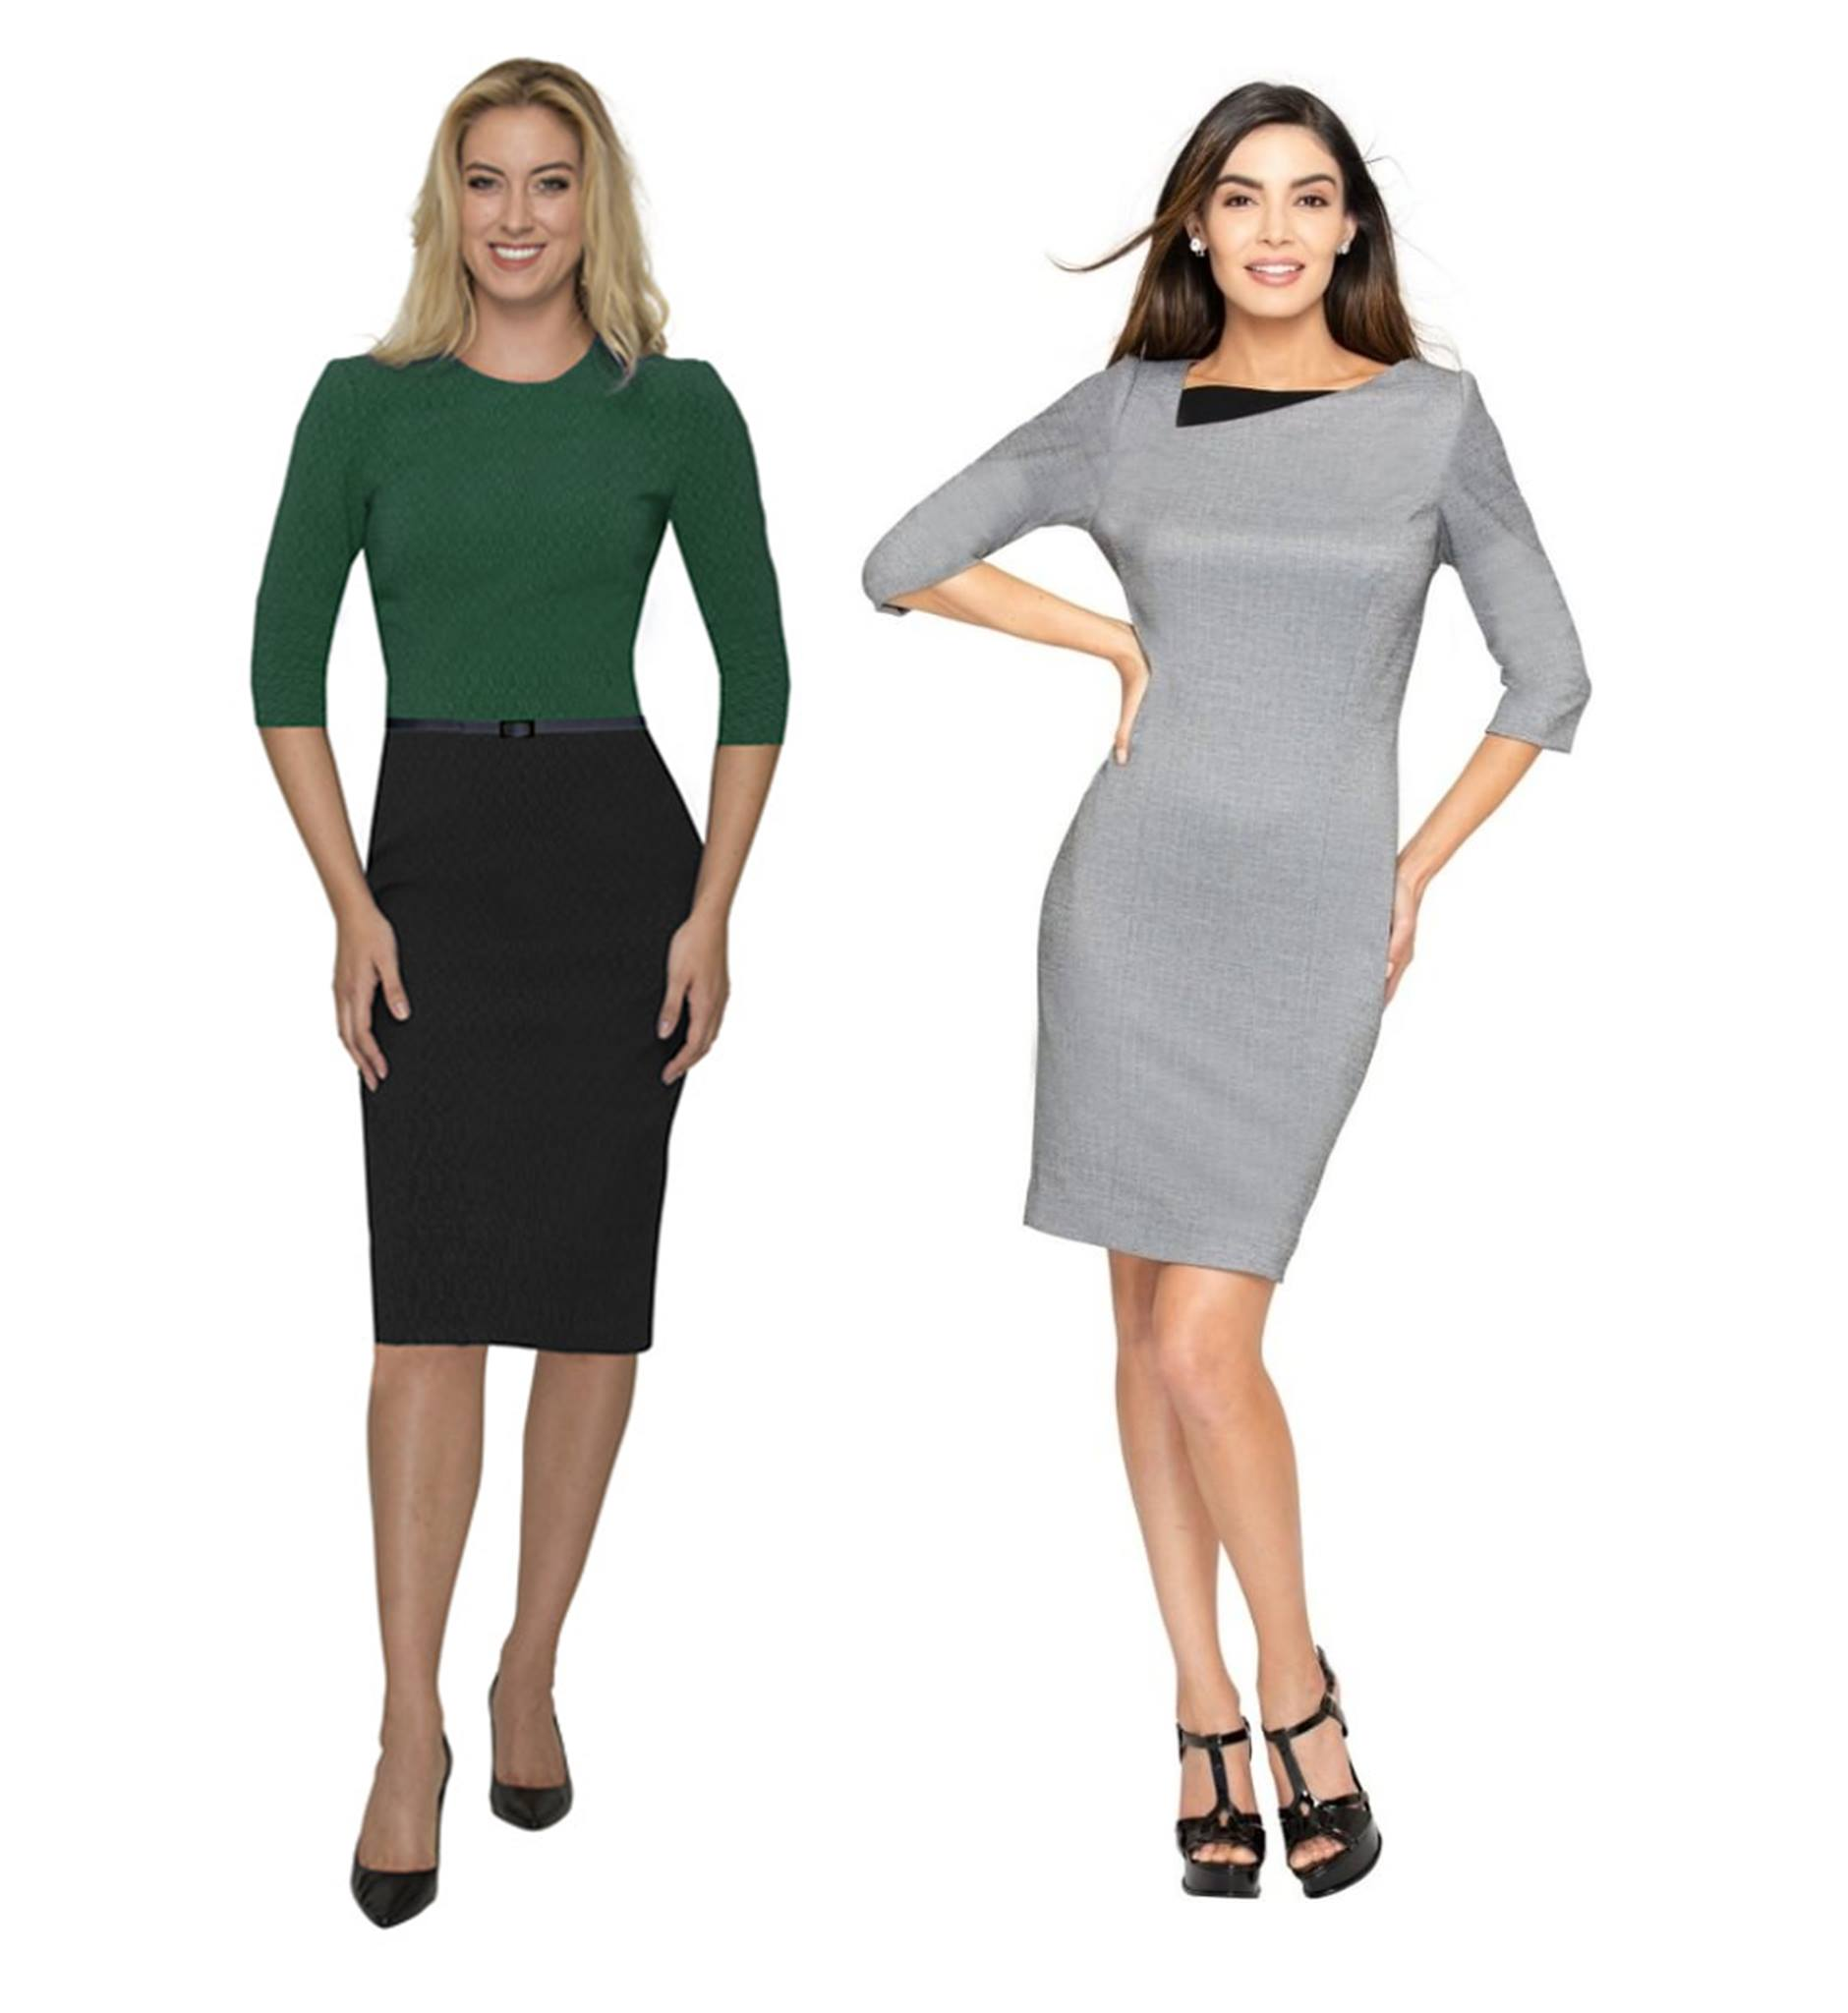 Susanna Beverly Hills Women's Fashion, Business Attire